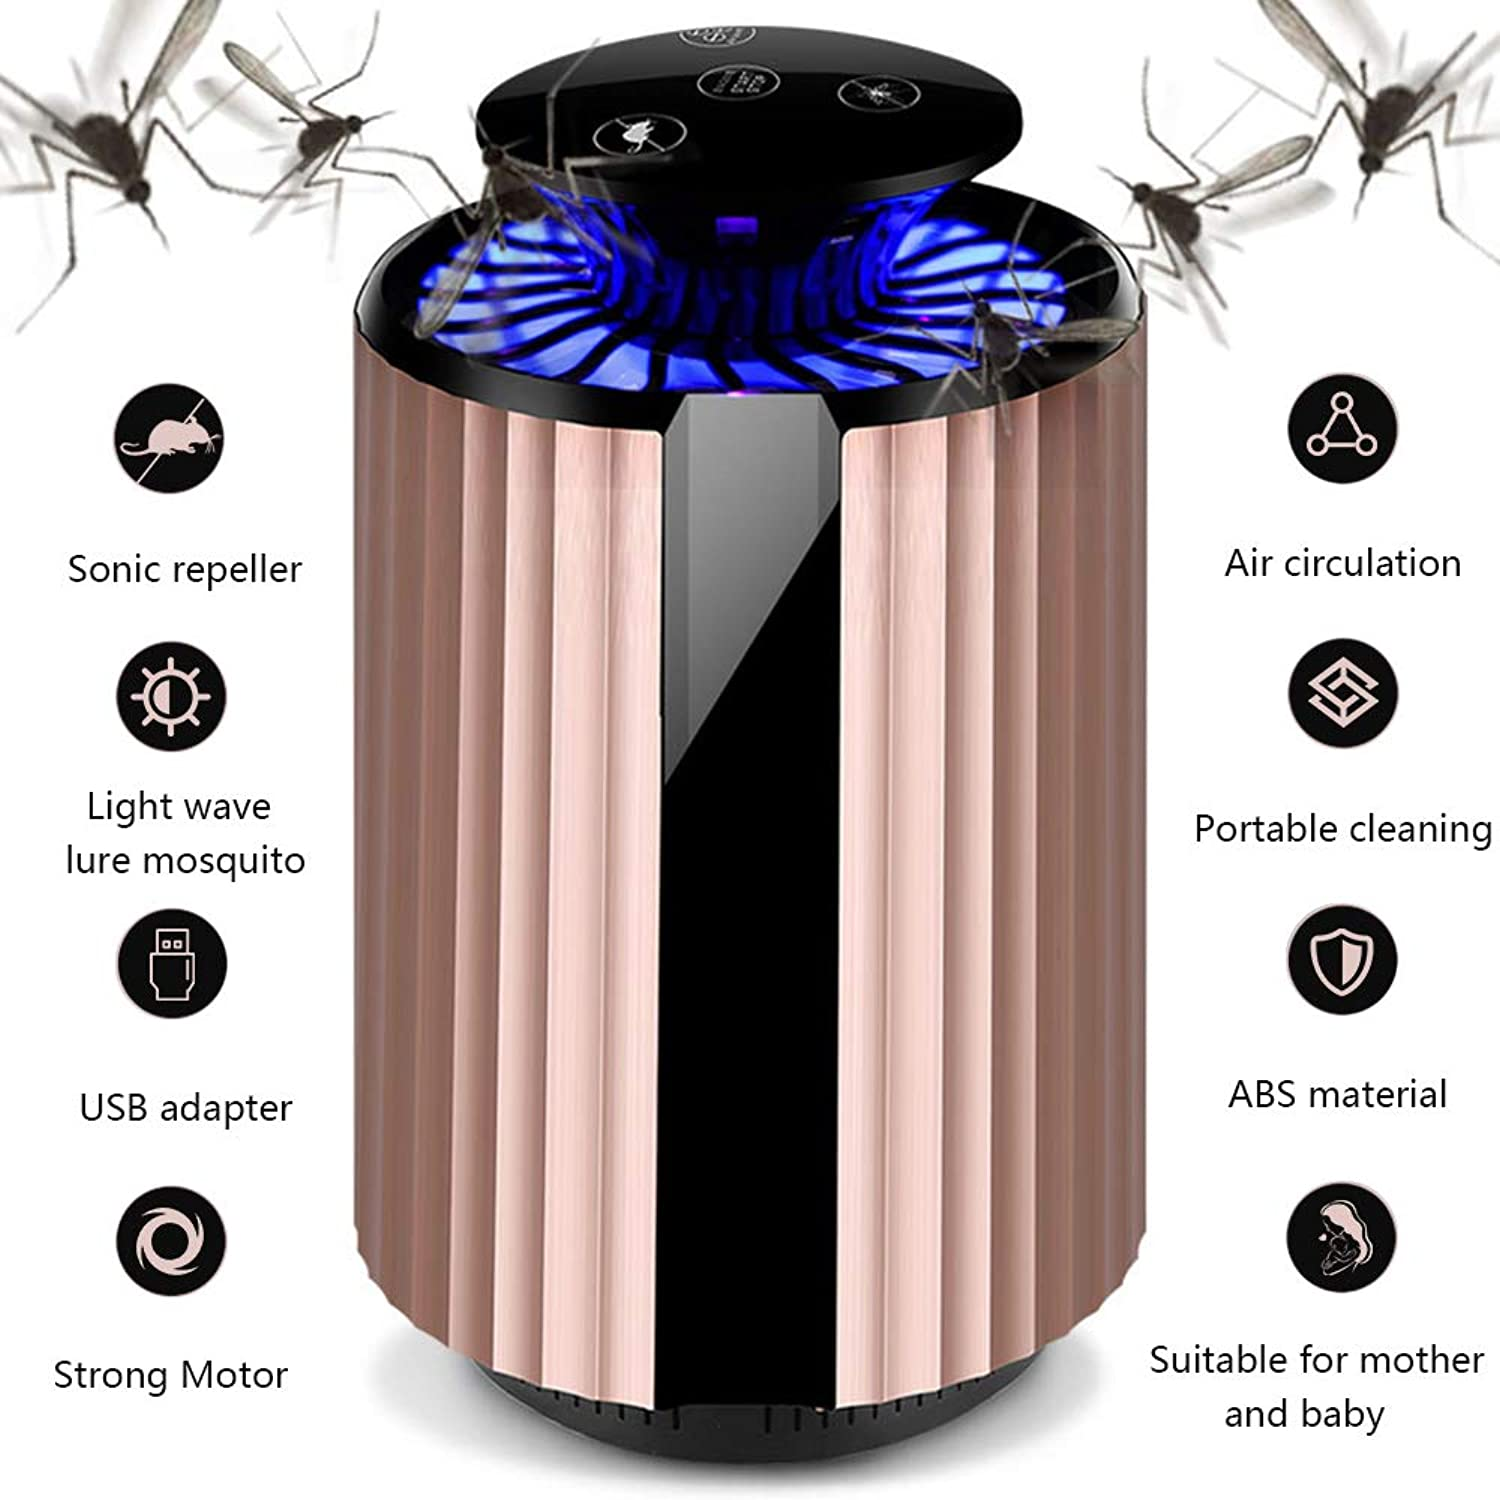 New Electric USB Mosquito Killer Lamp Home Radiationless Mosquito Repellent Table Lamp LED Bug Zapper Fly Bug Dispeller Insect Trap Air Circulation Pest Repeller,gold